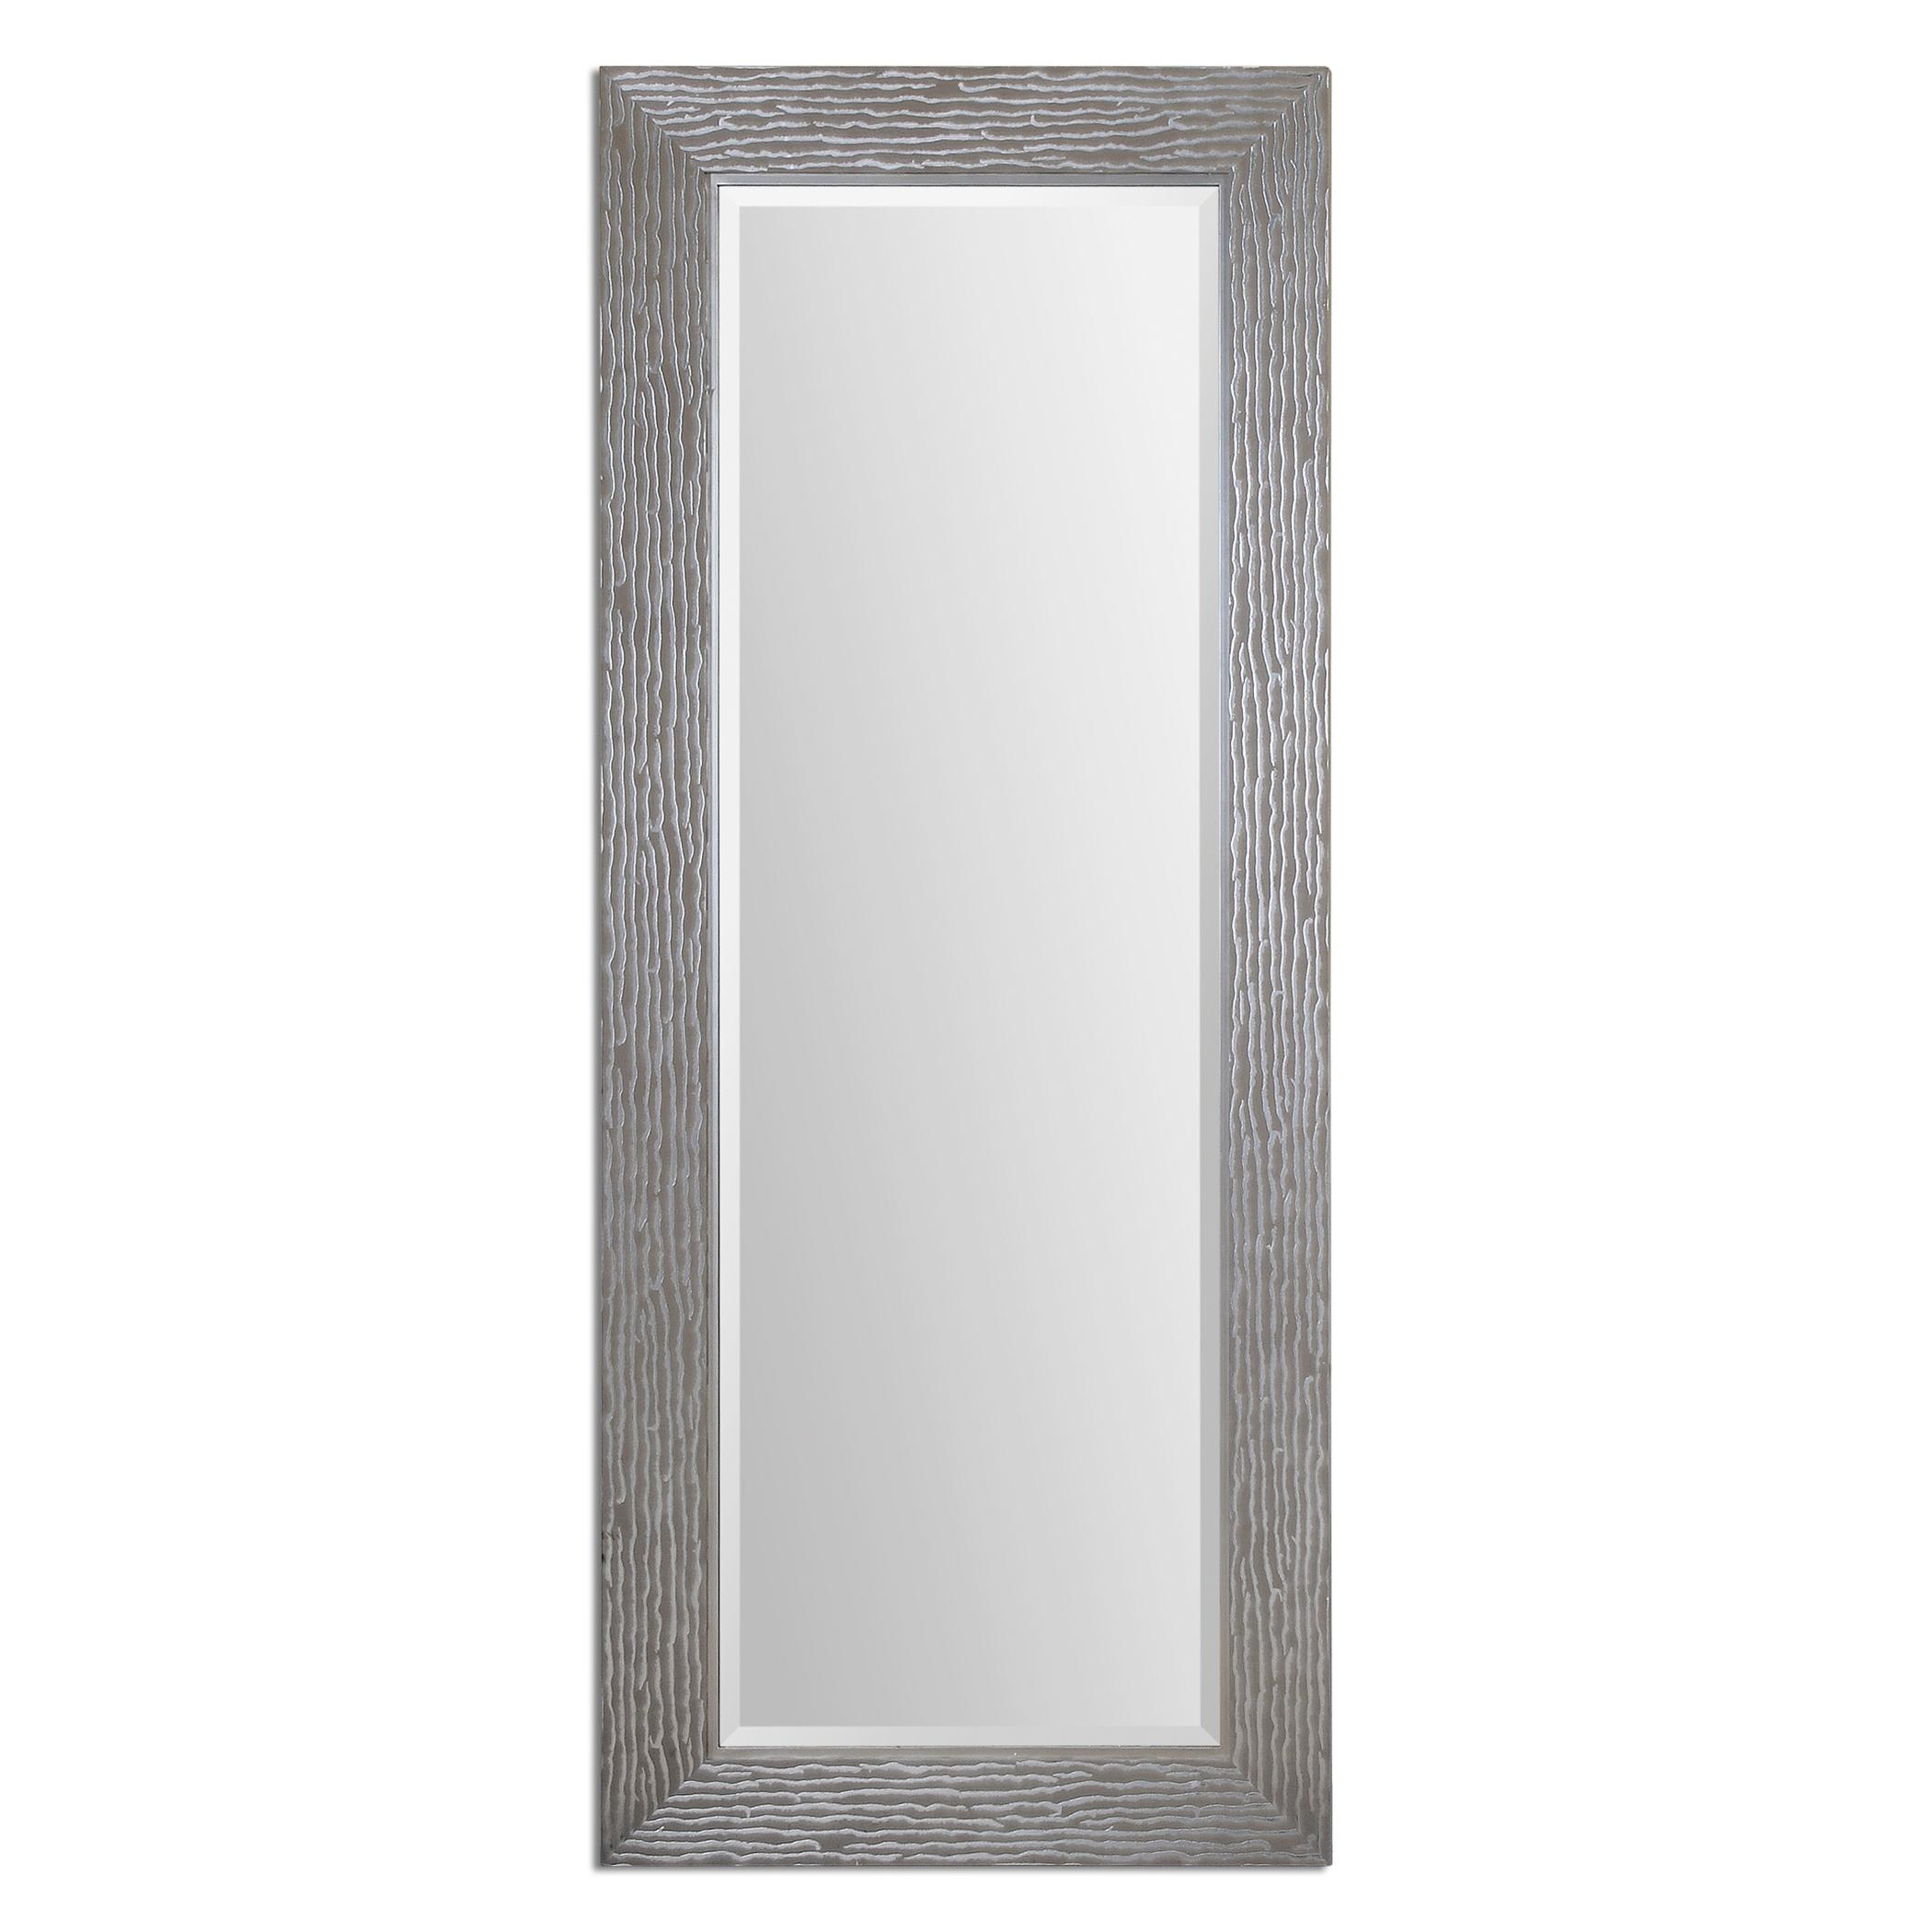 Uttermost Mirrors Amadeus Large Silver Mirror - Item Number: 14474